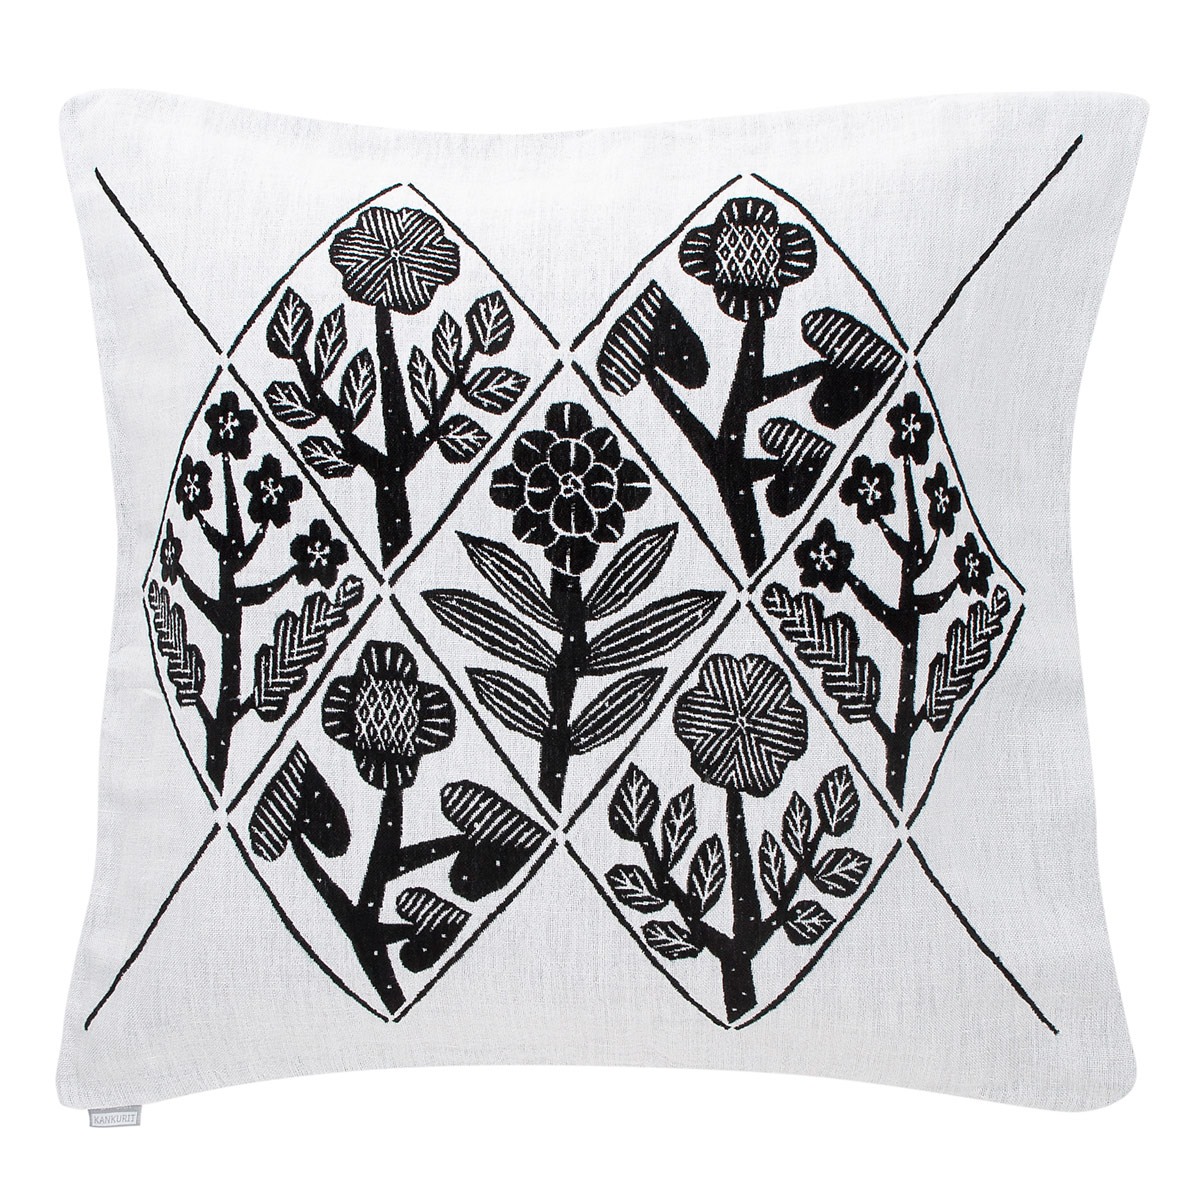 modern furniture cotton collectibles white f pair handcrafted master decorative a textiles with id throws grey polished black more of for and square pillow throw pillows